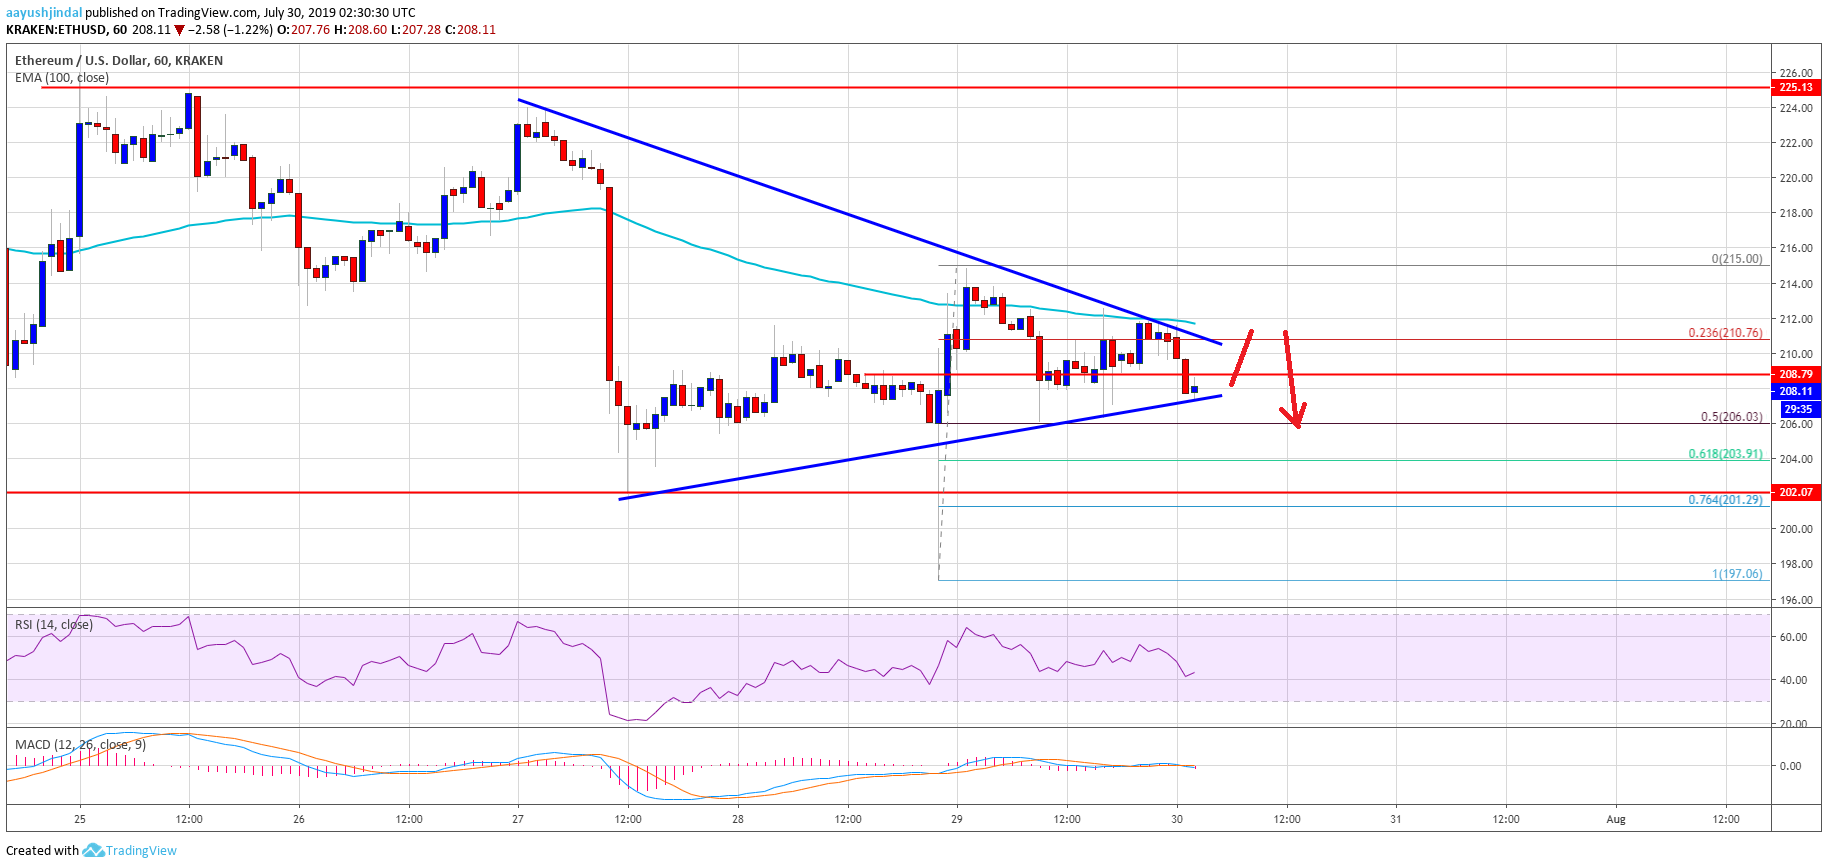 Ethereum Price (ETH) Flirts With Key Resistance Amid Negative Sentiment